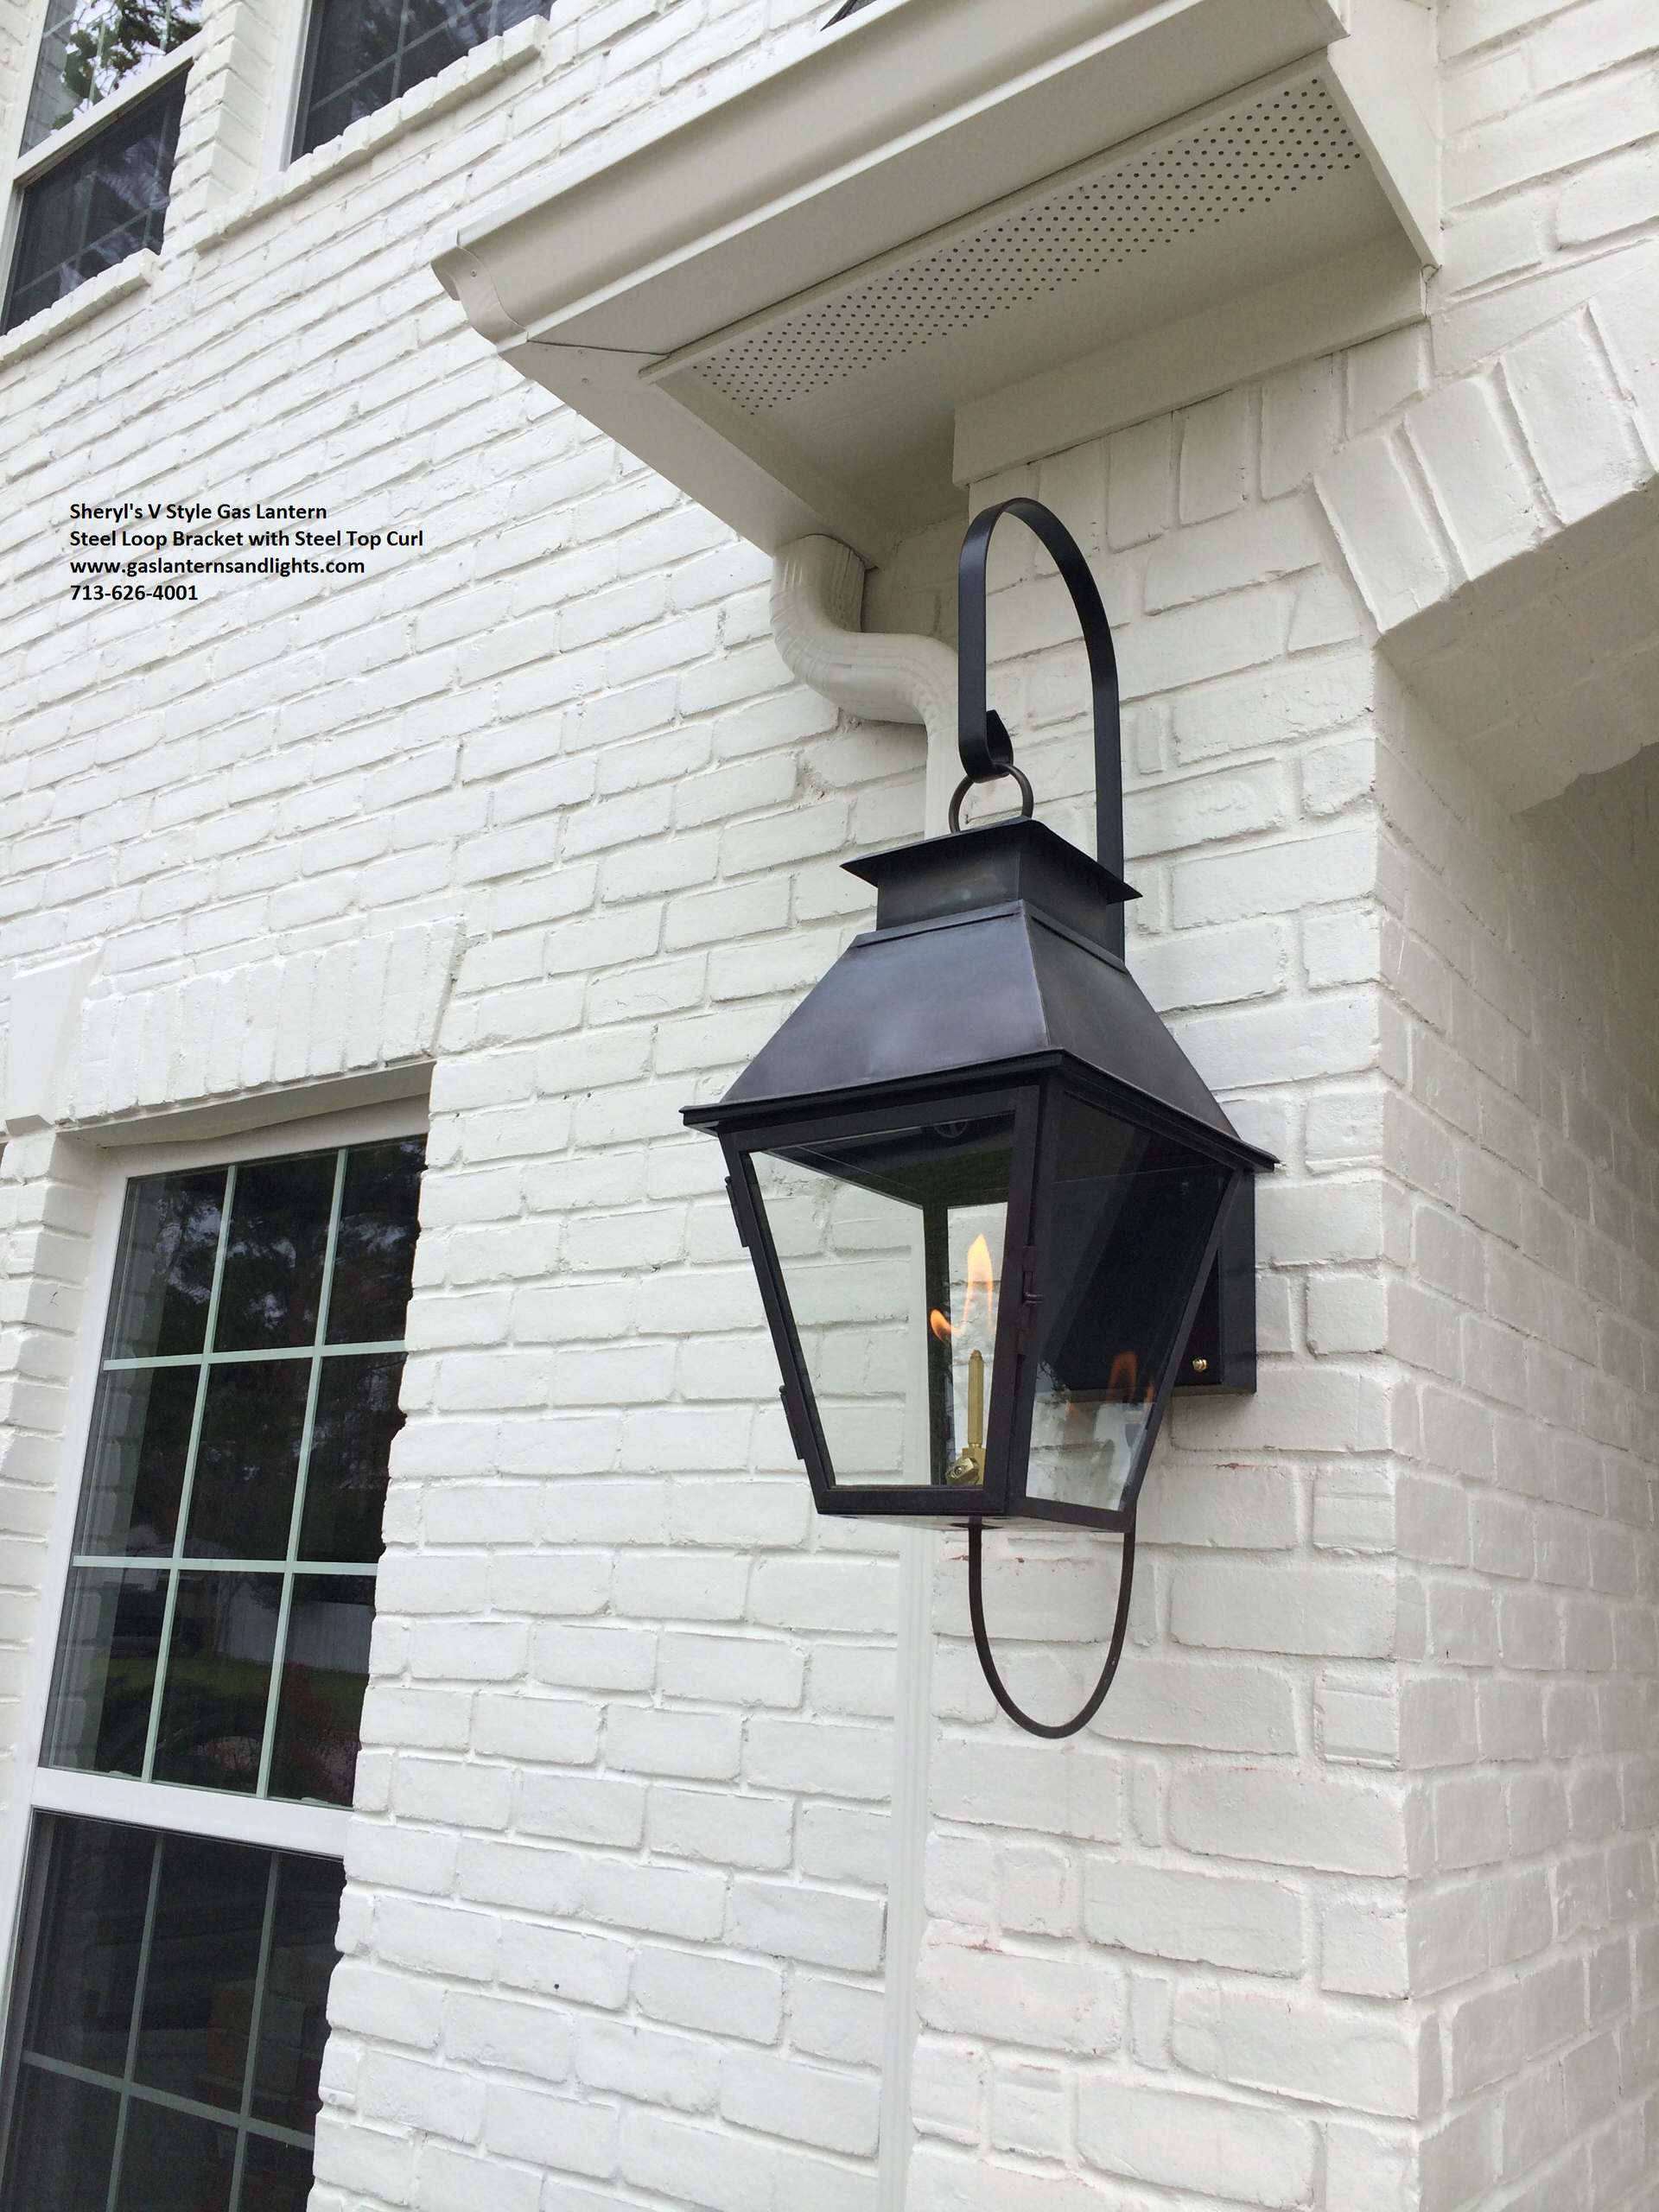 Sheryl's V Style Gas Lantern on Steel Loop Bracket